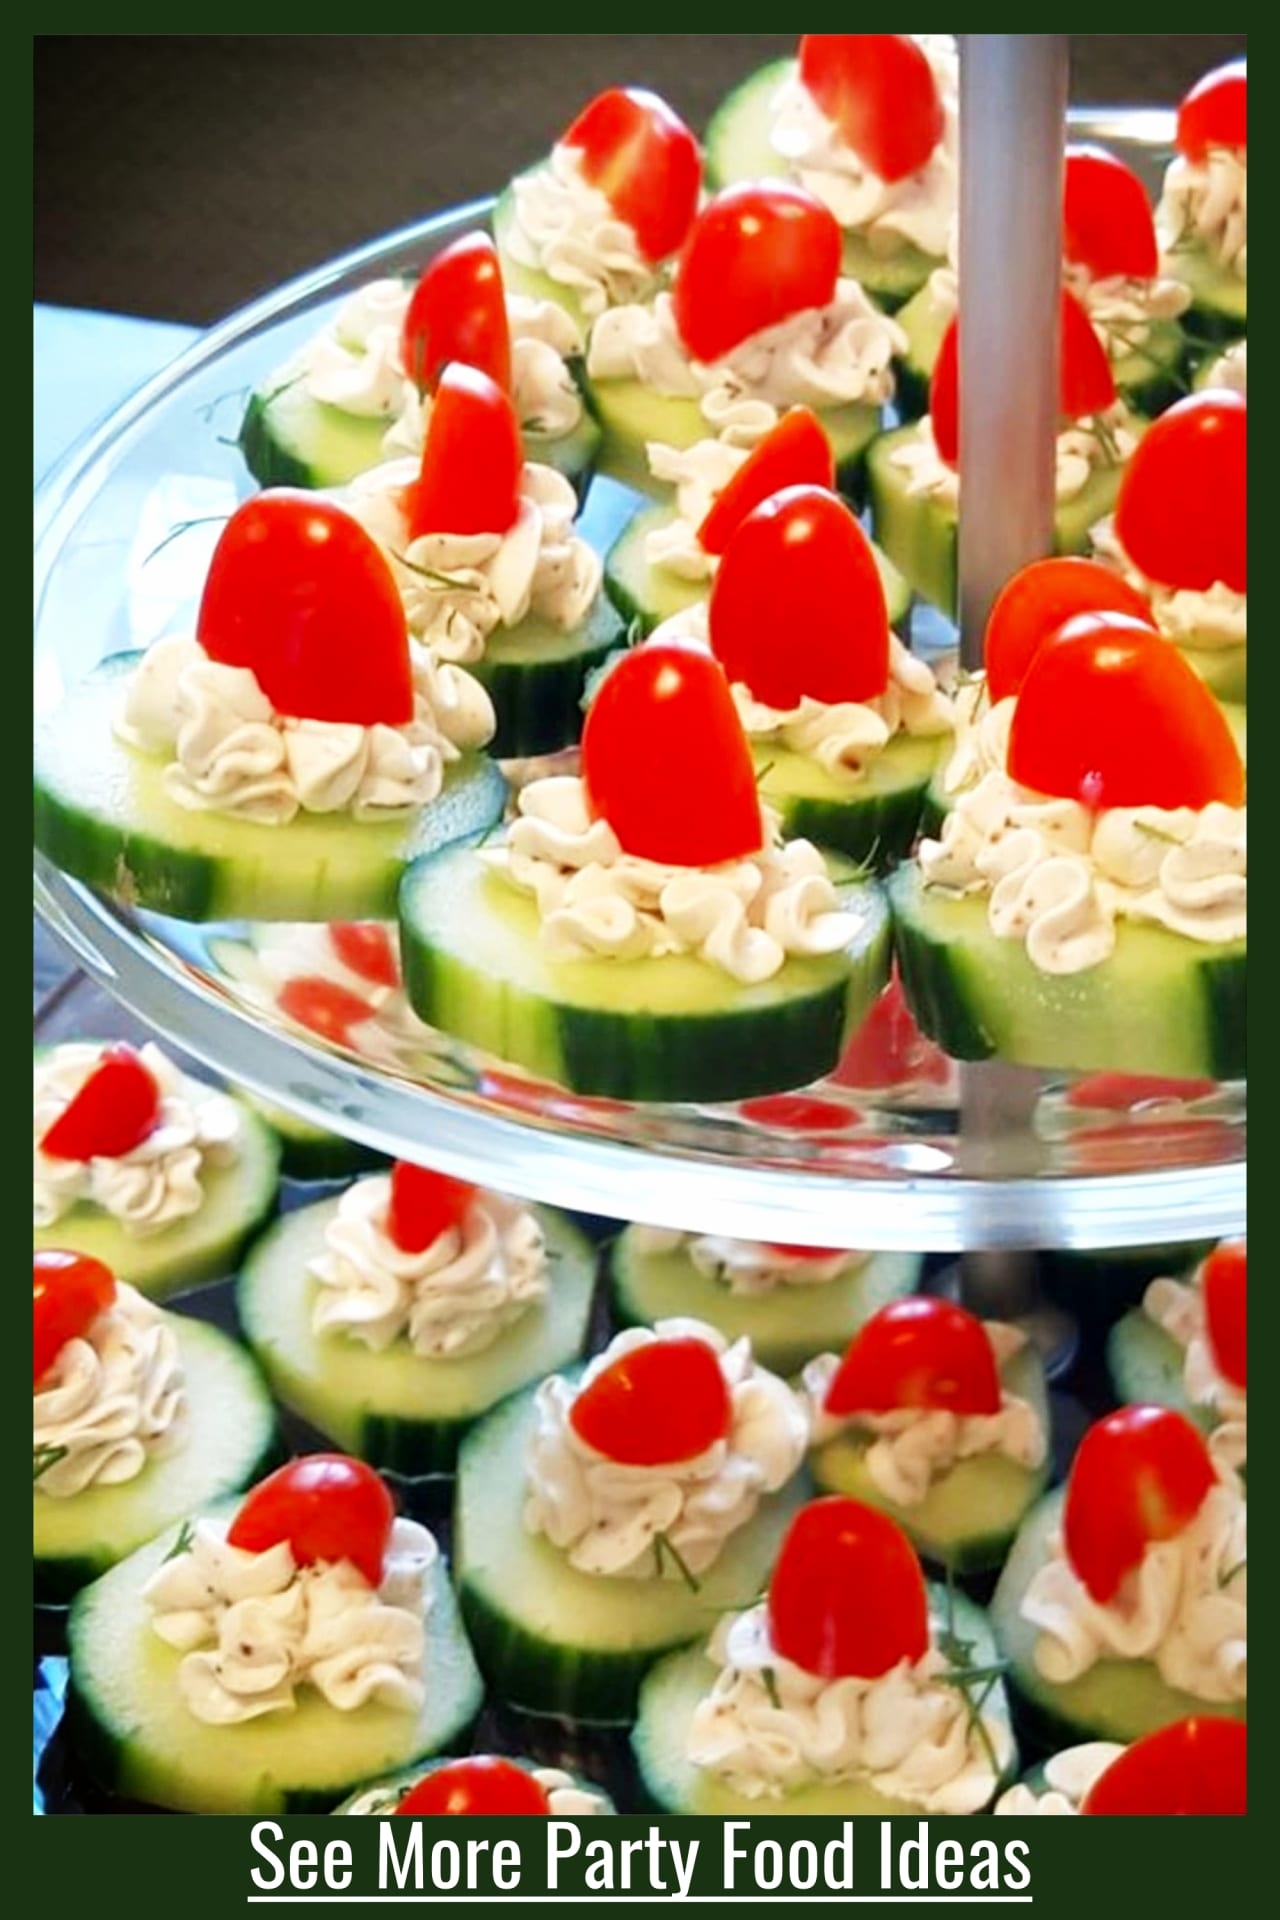 Block party food appetizers - easy party appetizer ideas for feeding a crowd - Simple summer party appetizer and salads ideas